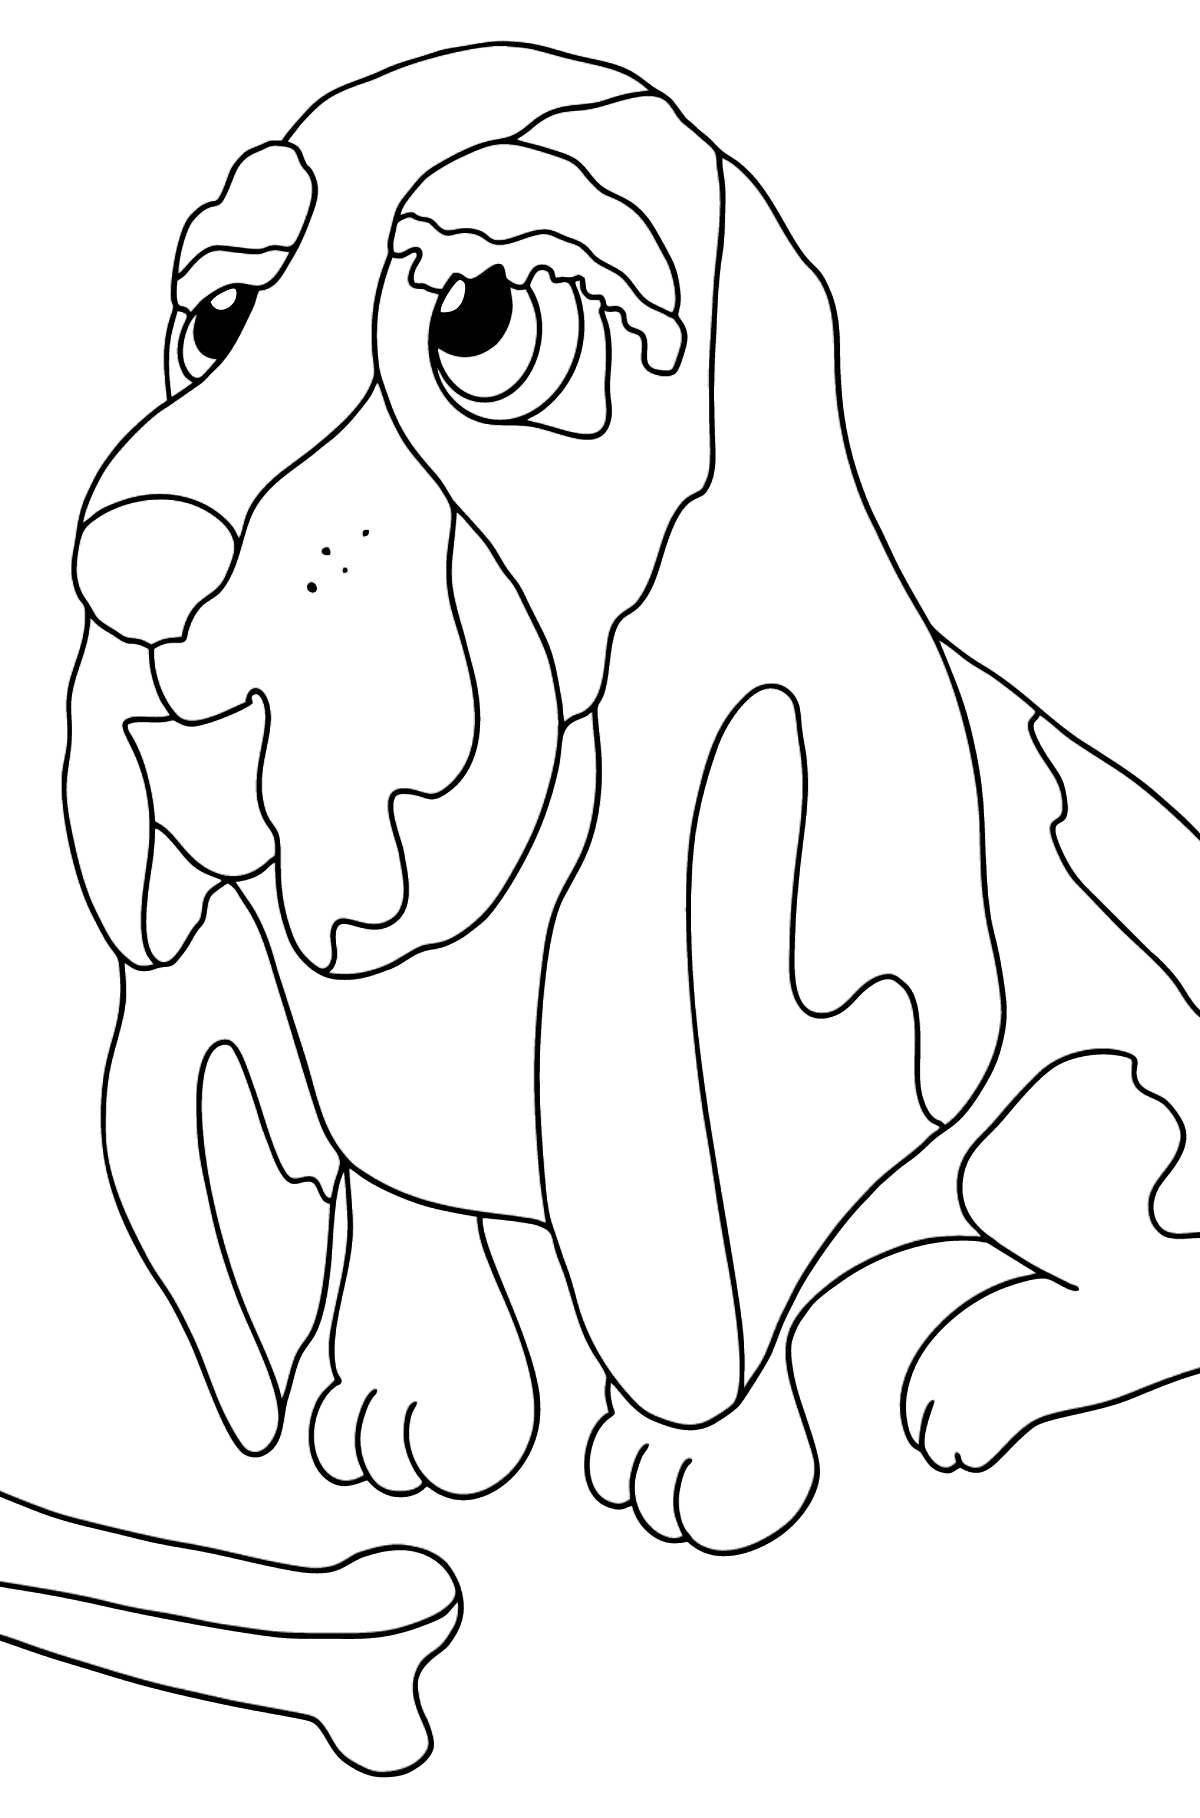 Coloring Page - A Dog is Sitting near a Bone - Coloring Pages for Kids